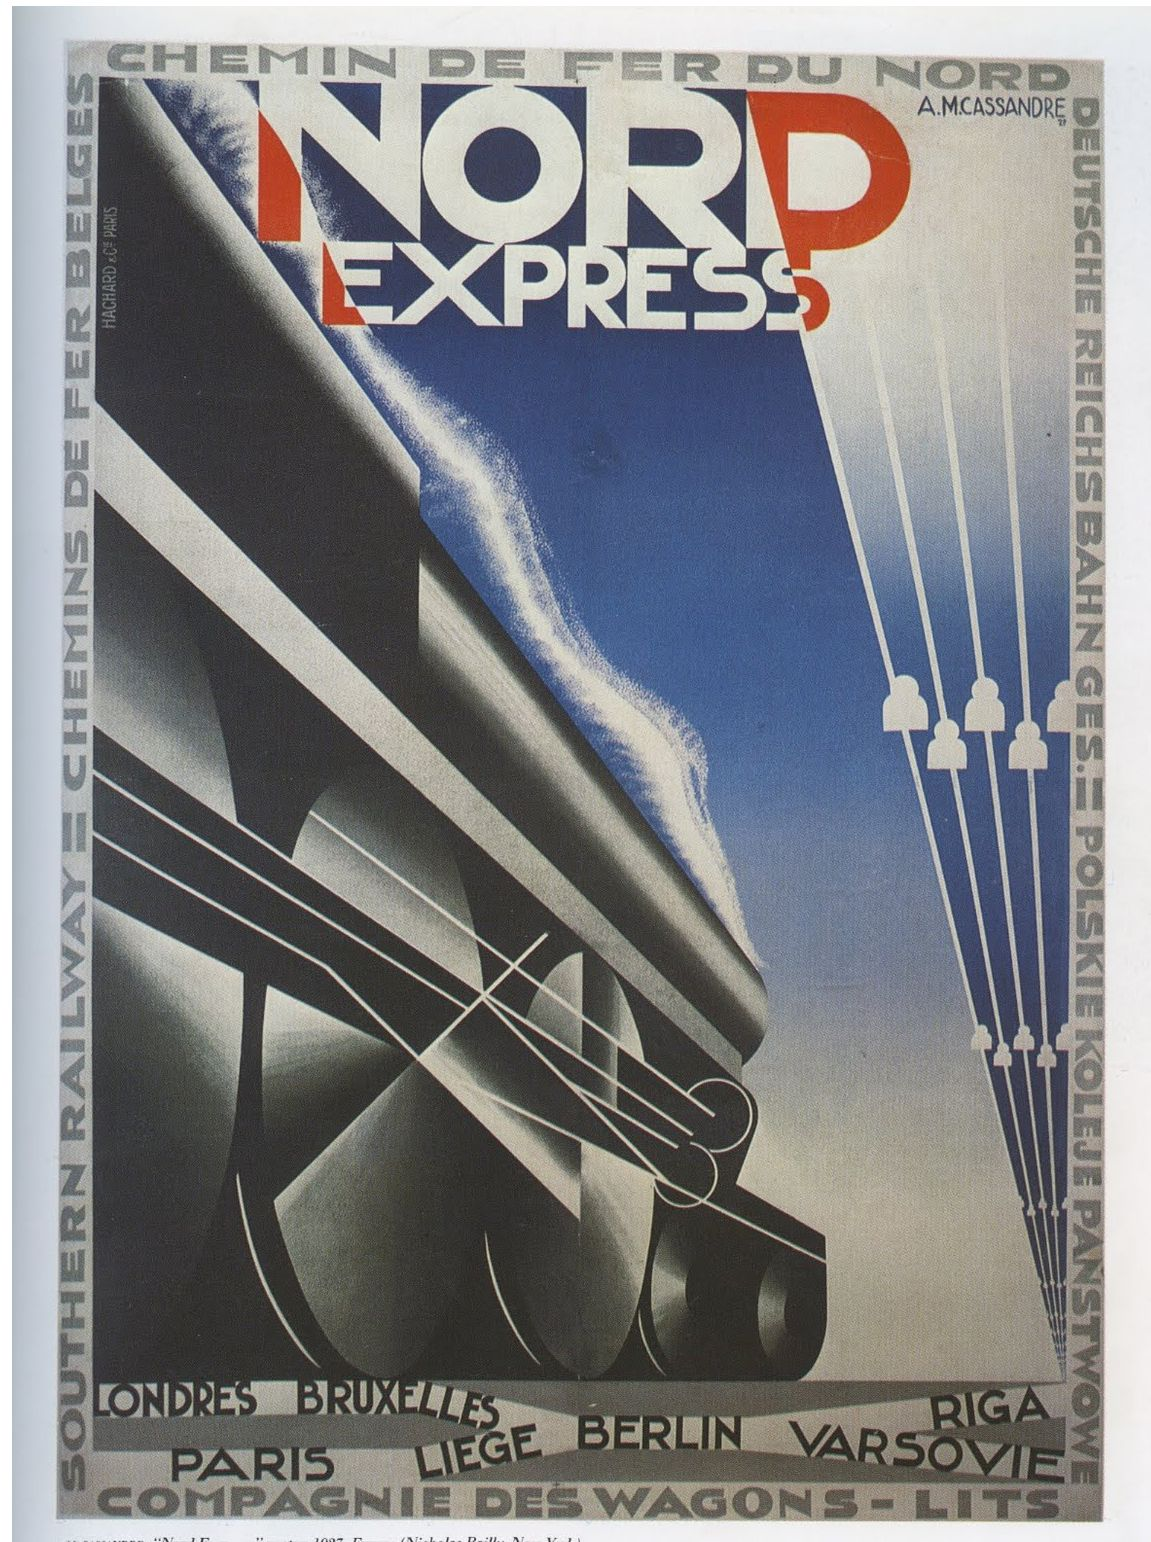 Nord Express Cassandre Rail Poster 1927 Art Deco Design Posters